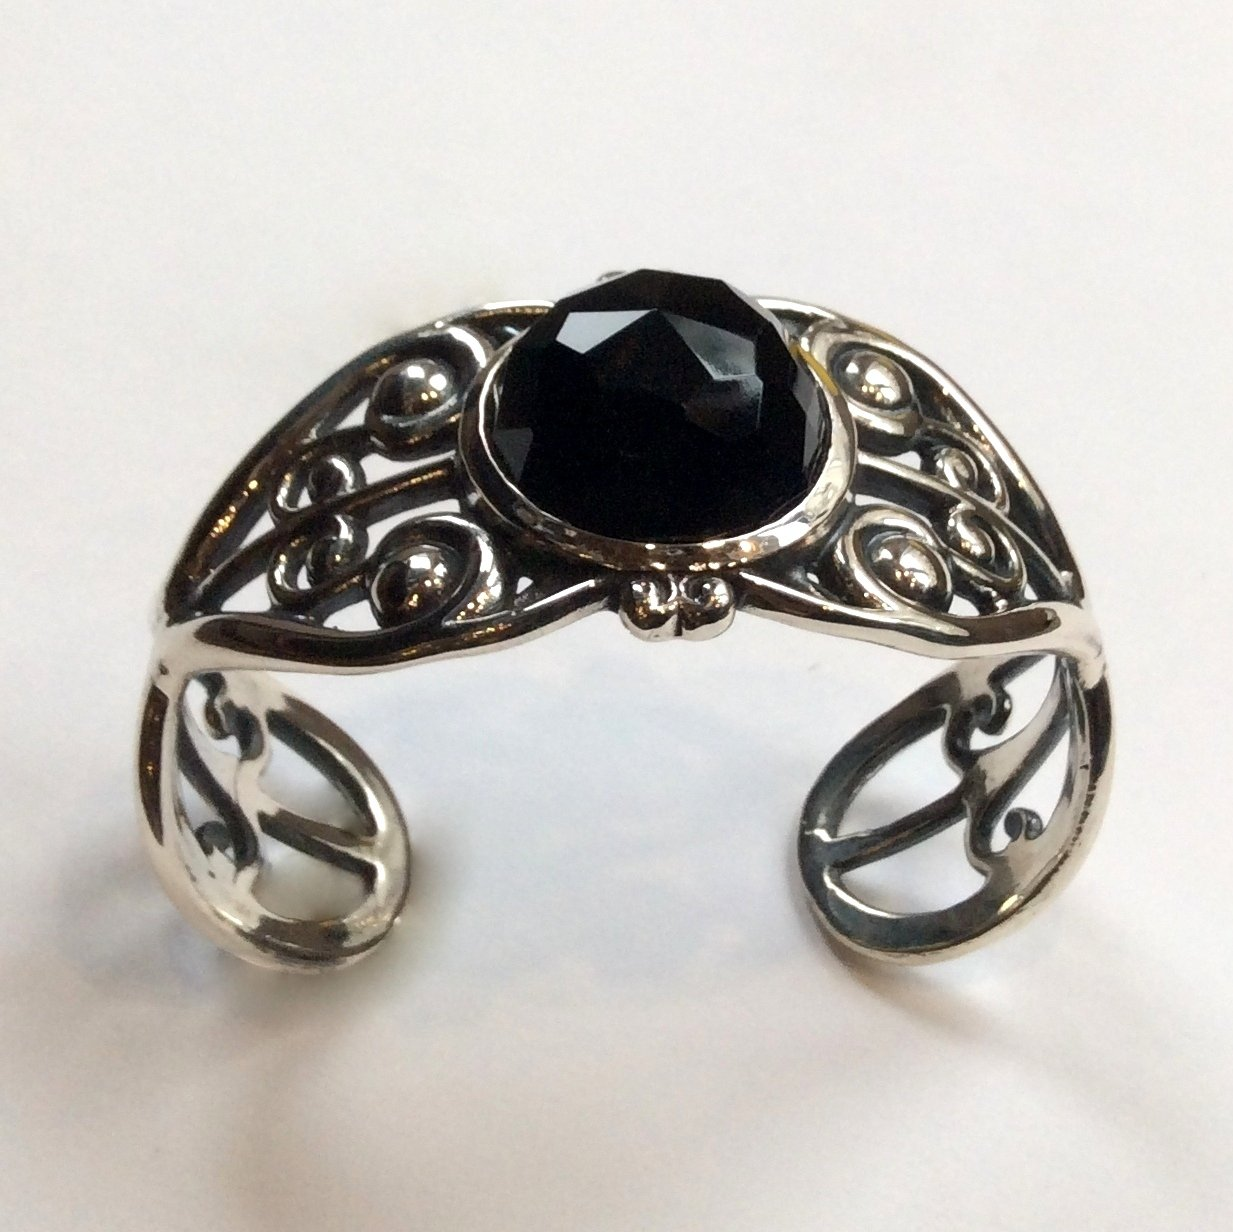 fashionable cuff bangle gift Natural black onyx 925 sterling silver cuff bracelet party wear superb men /& women jewelry designer jewelry